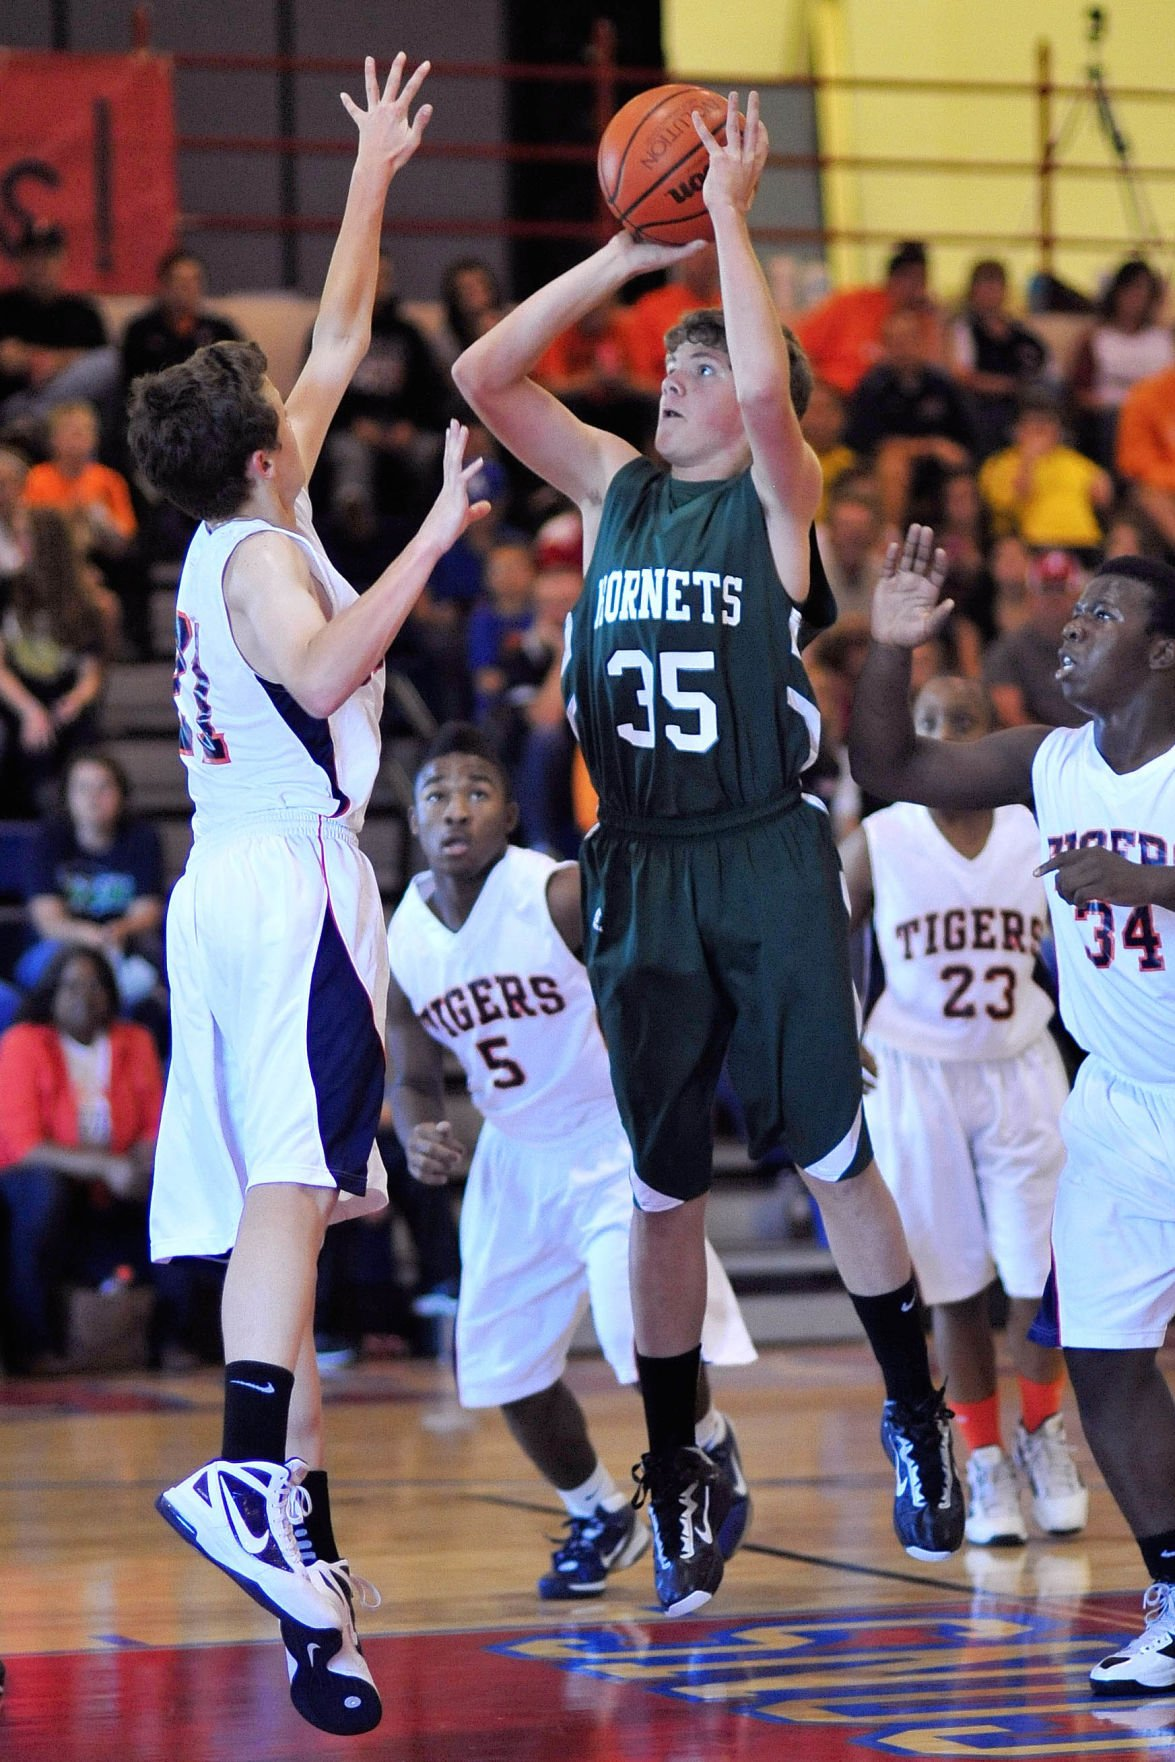 City Tigers earn Tip Off championship